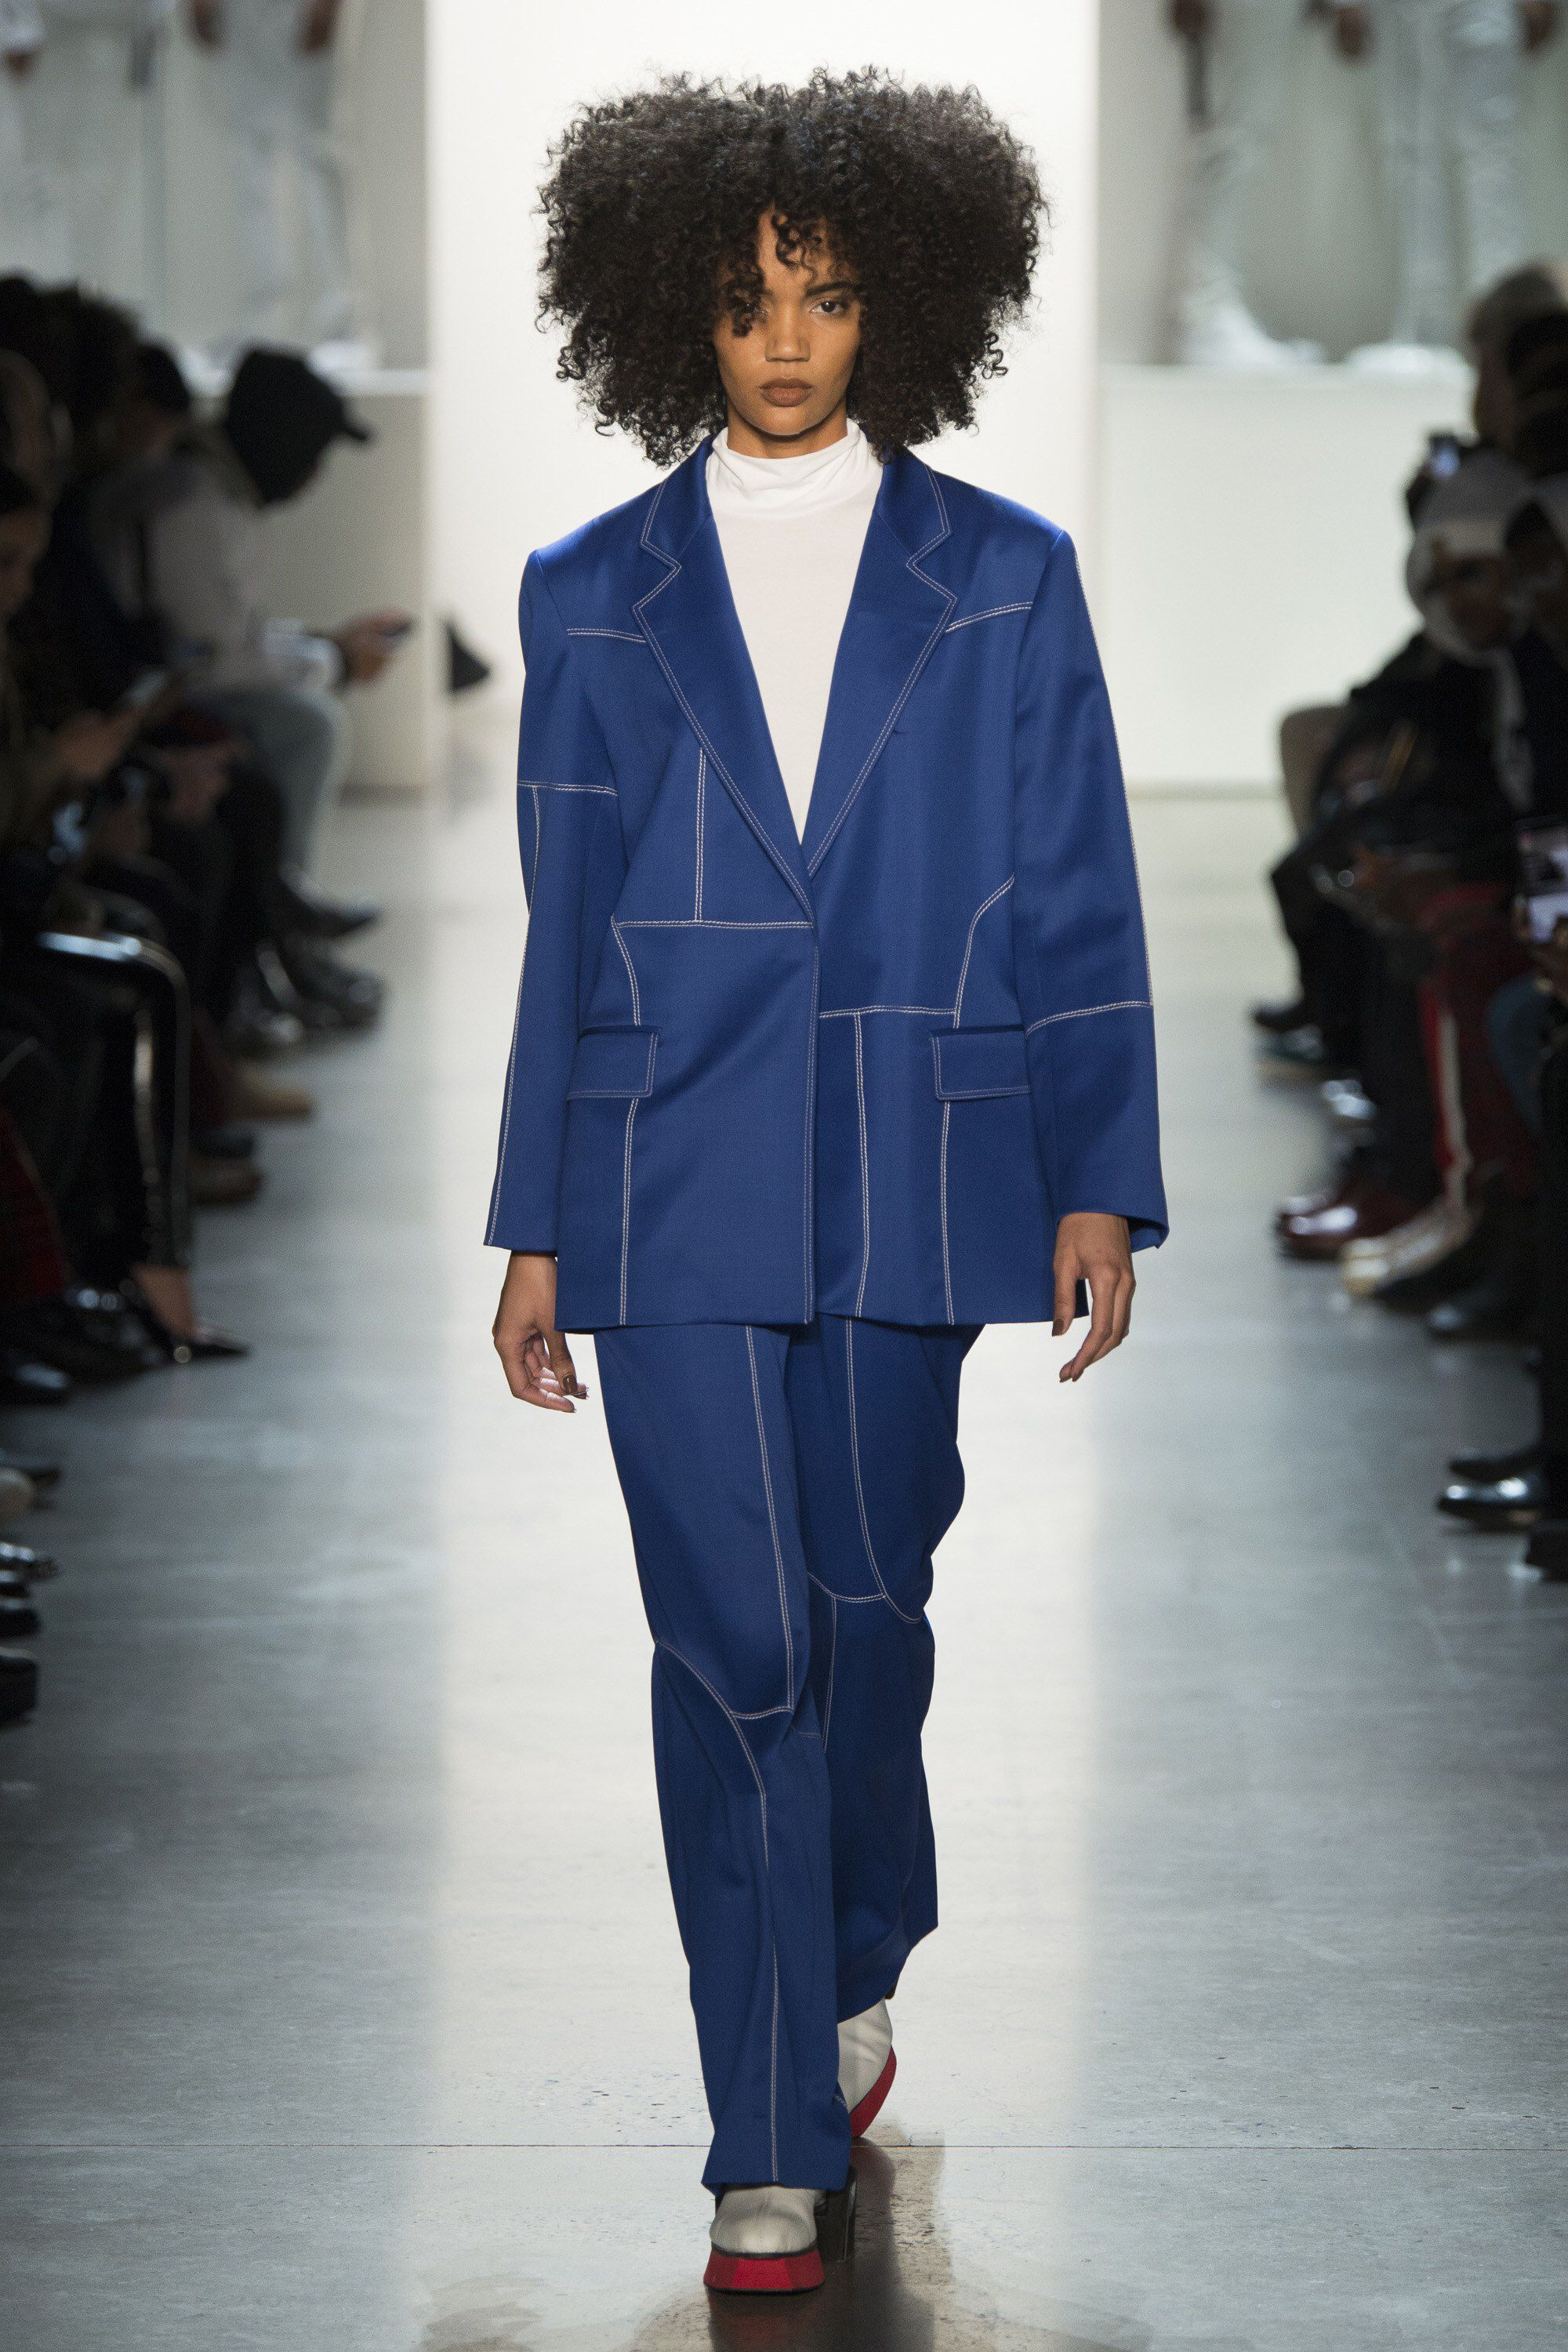 Pyer Moss Fall 2018 Ready-to-Wear Fashion Show Collection